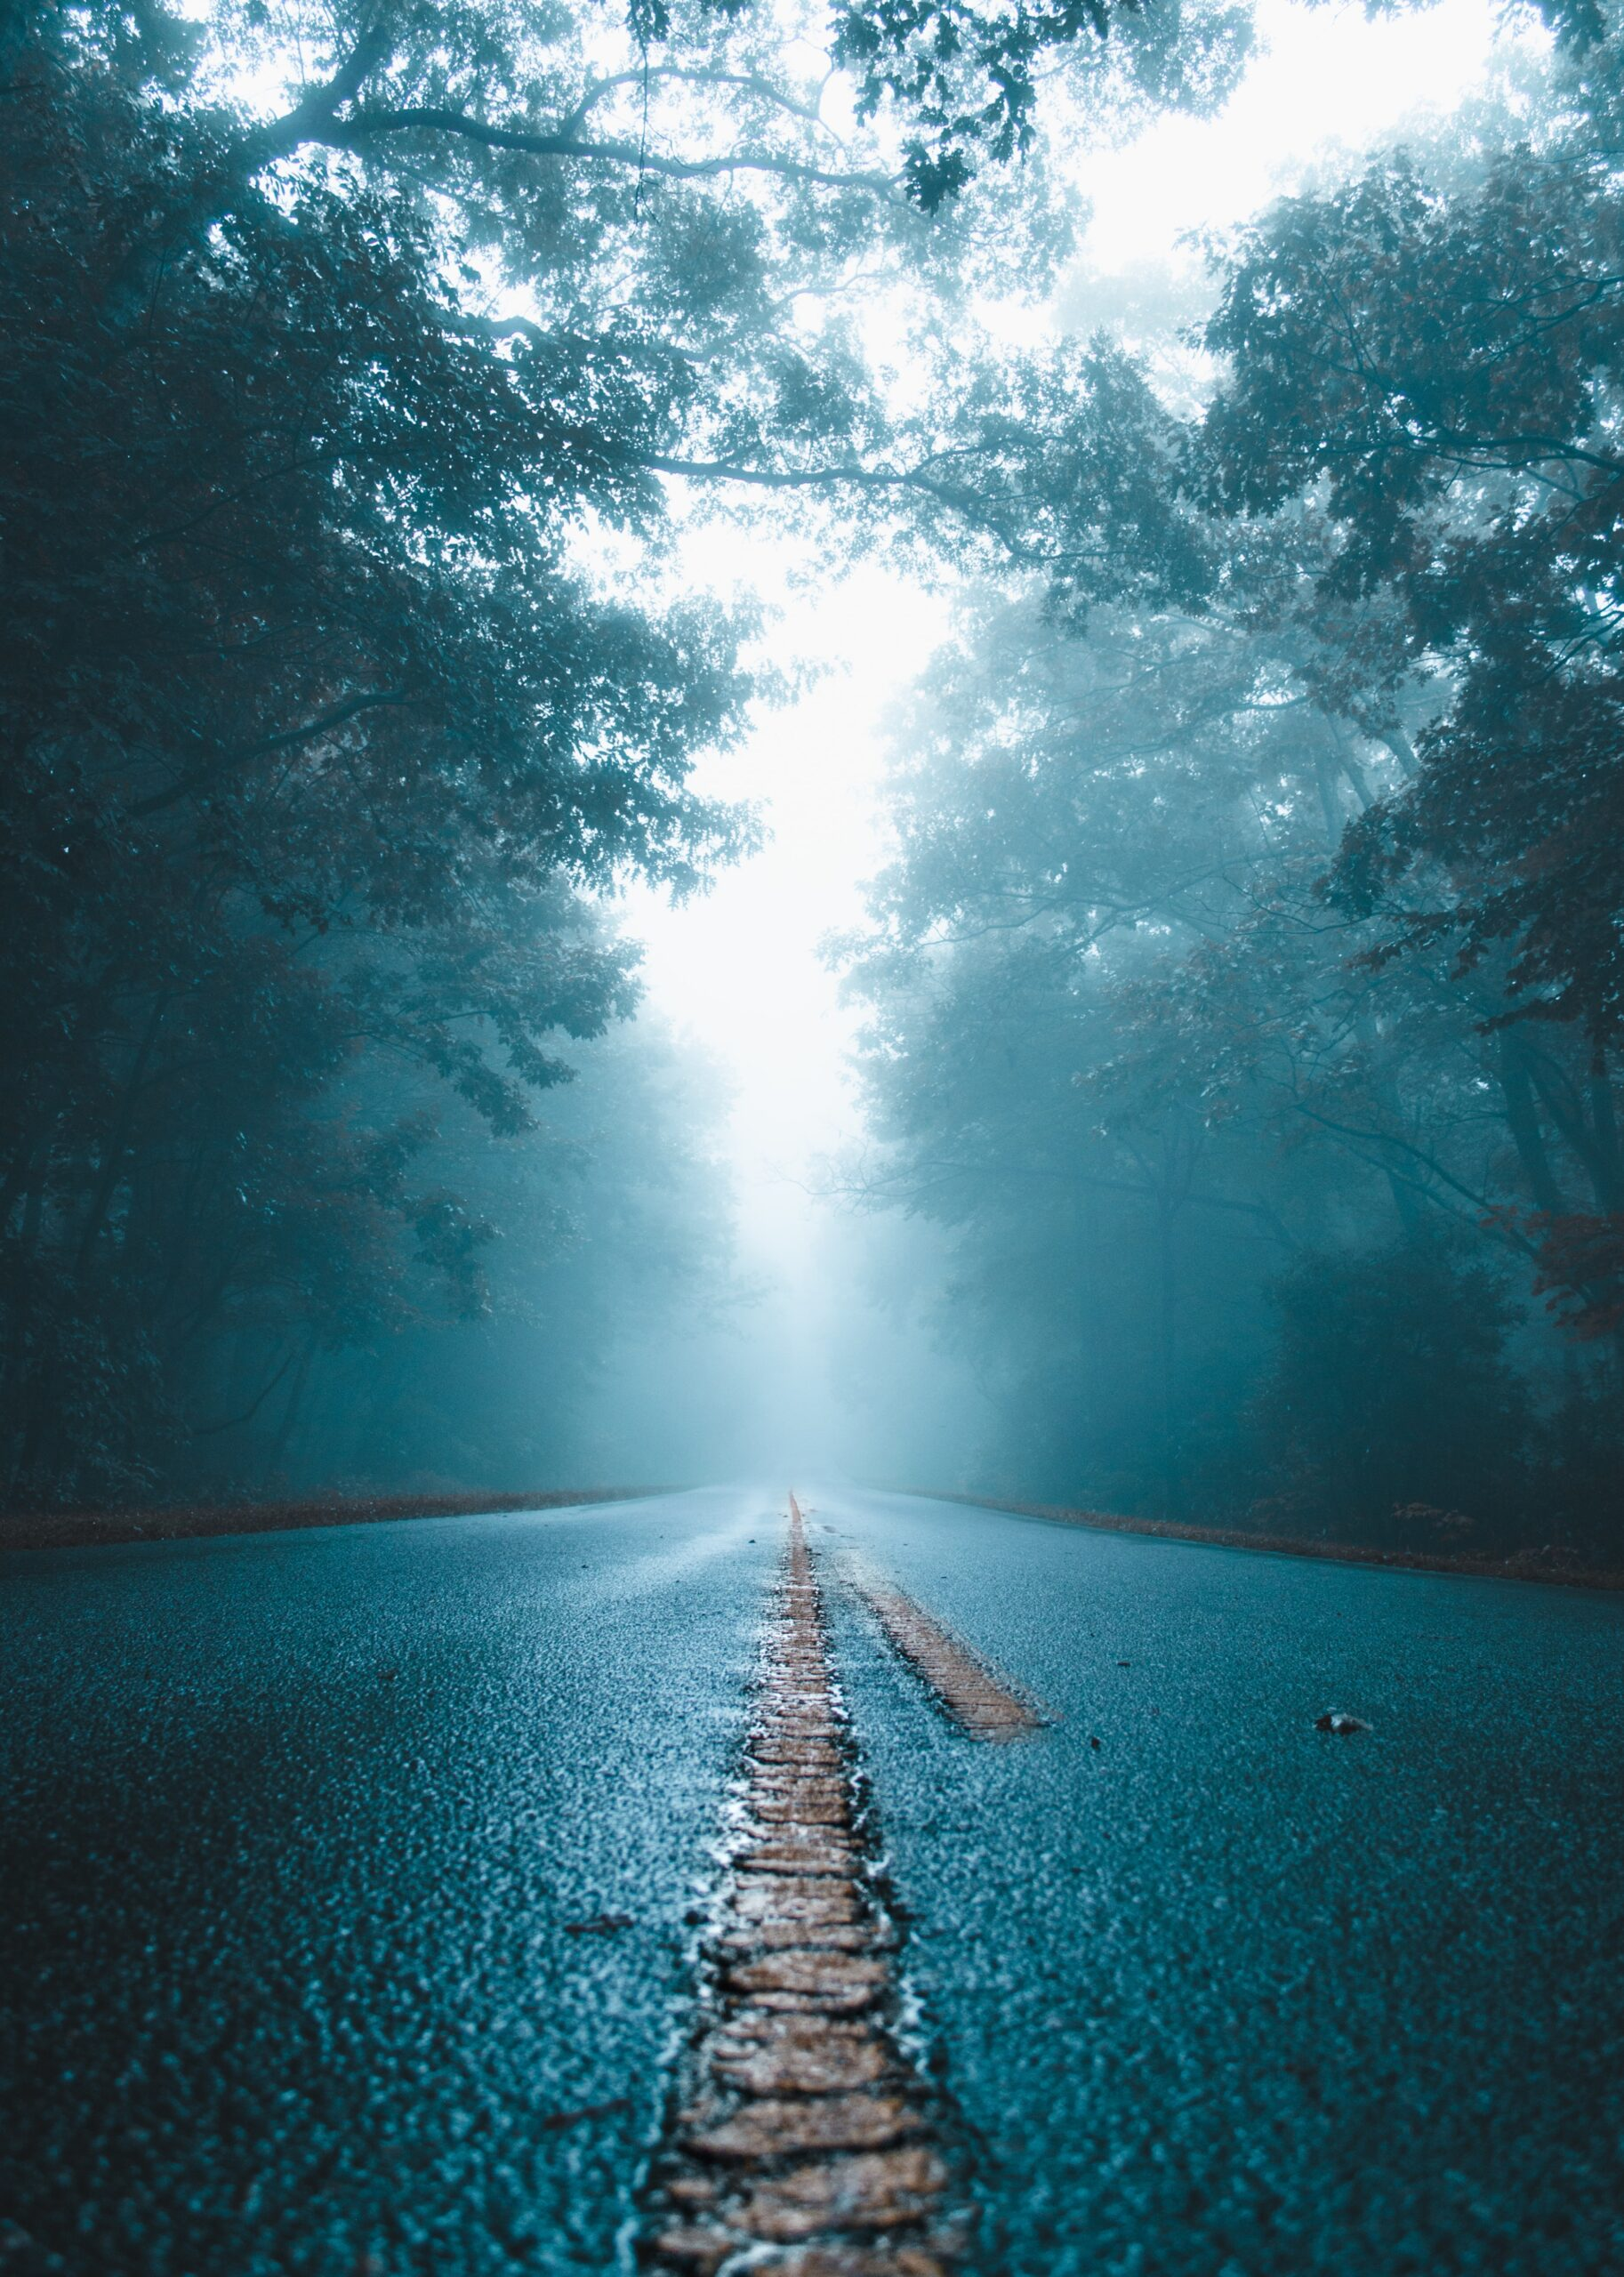 This is an image of a foggy road.